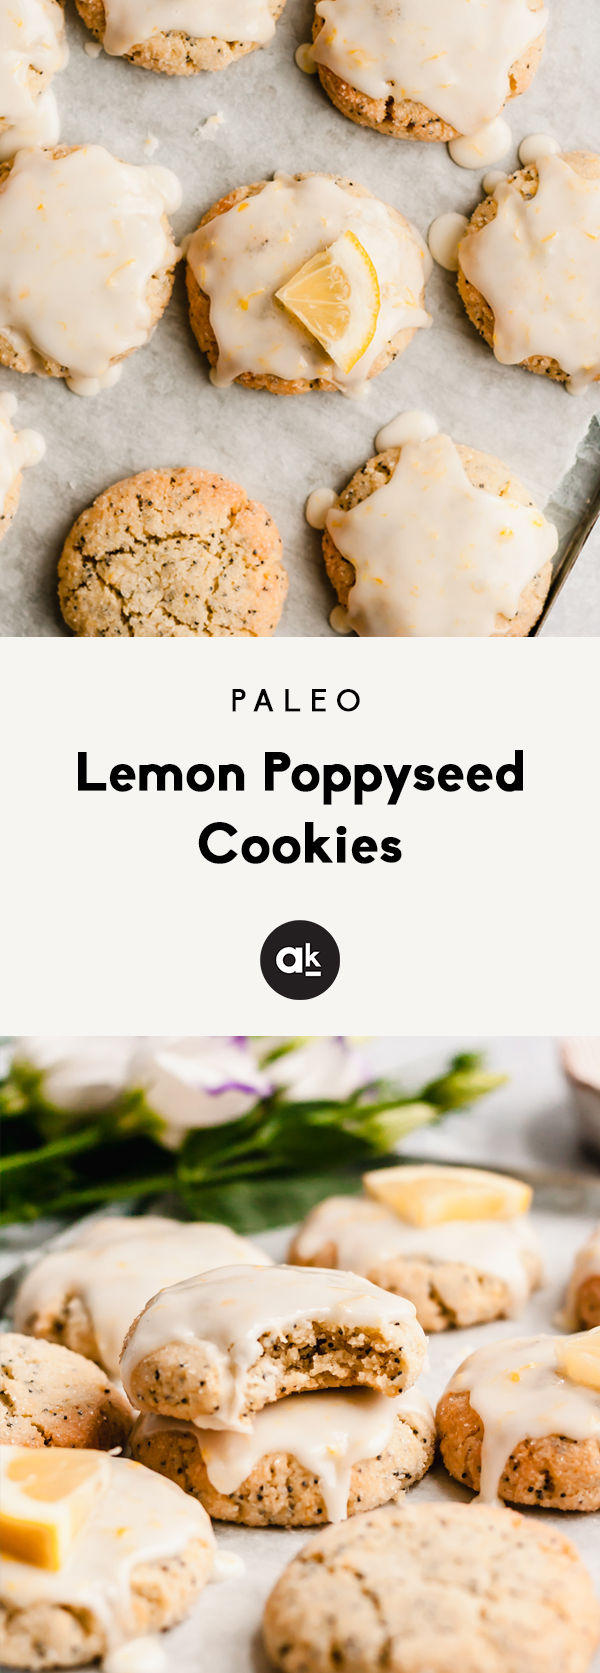 Gorgeous paleo lemon poppyseed cookies made with a mix of nutritious coconut flour and almond flour then topped with an easy, sweet & zesty lemon glaze. The perfect healthy spring treat that's gluten, grain, dairy free and easily vegan!